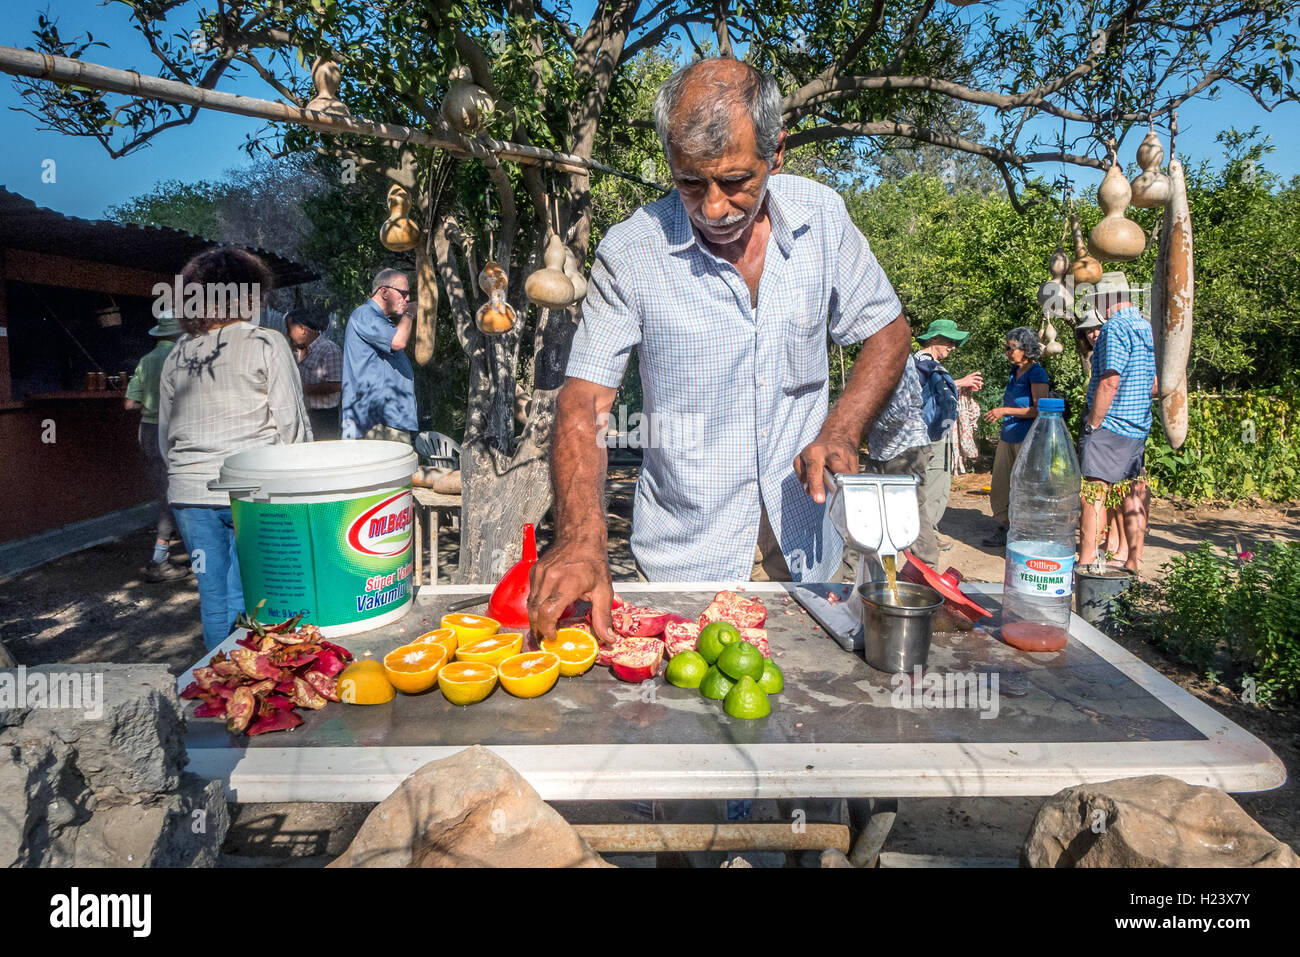 A man making freshly-squeezed fruit juice with oranges and pomegranates in northern Cyprus - Stock Image